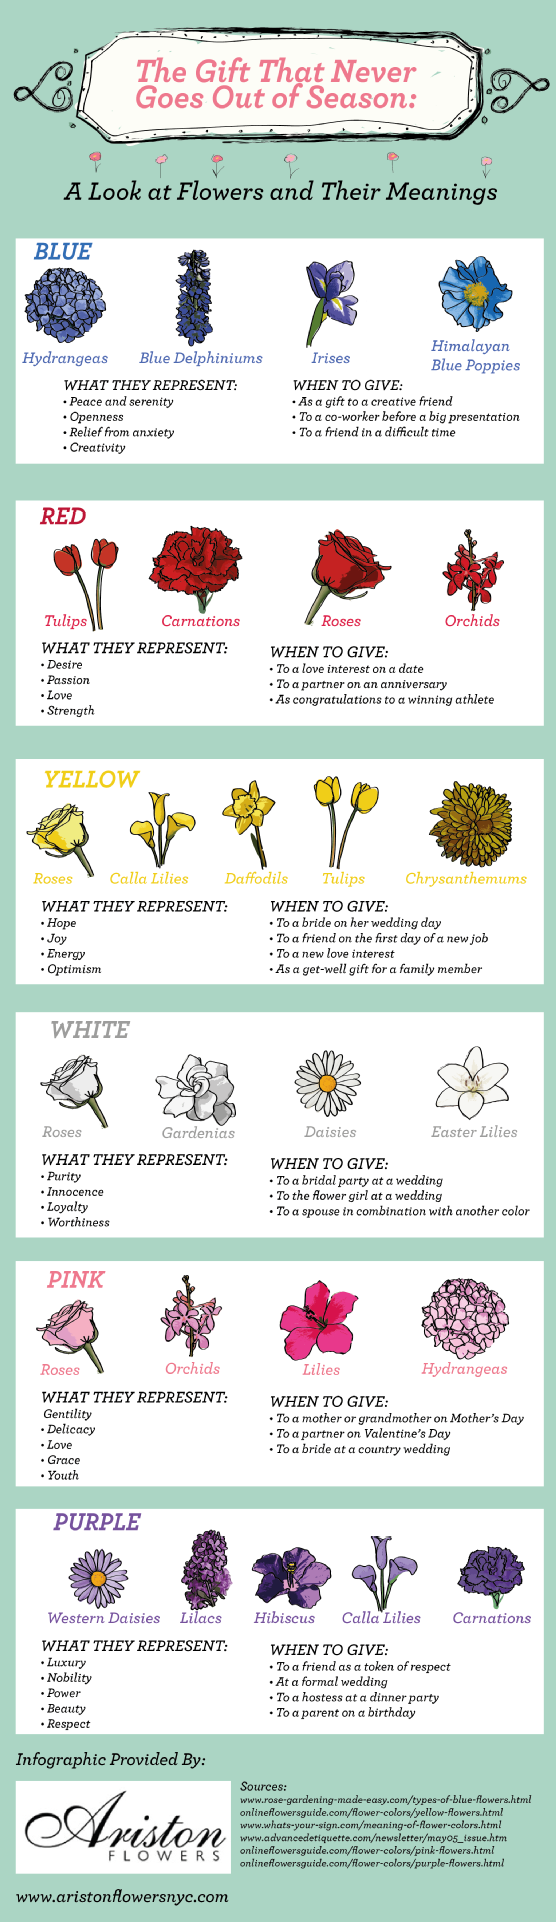 Symbolic Meaning of Flowers